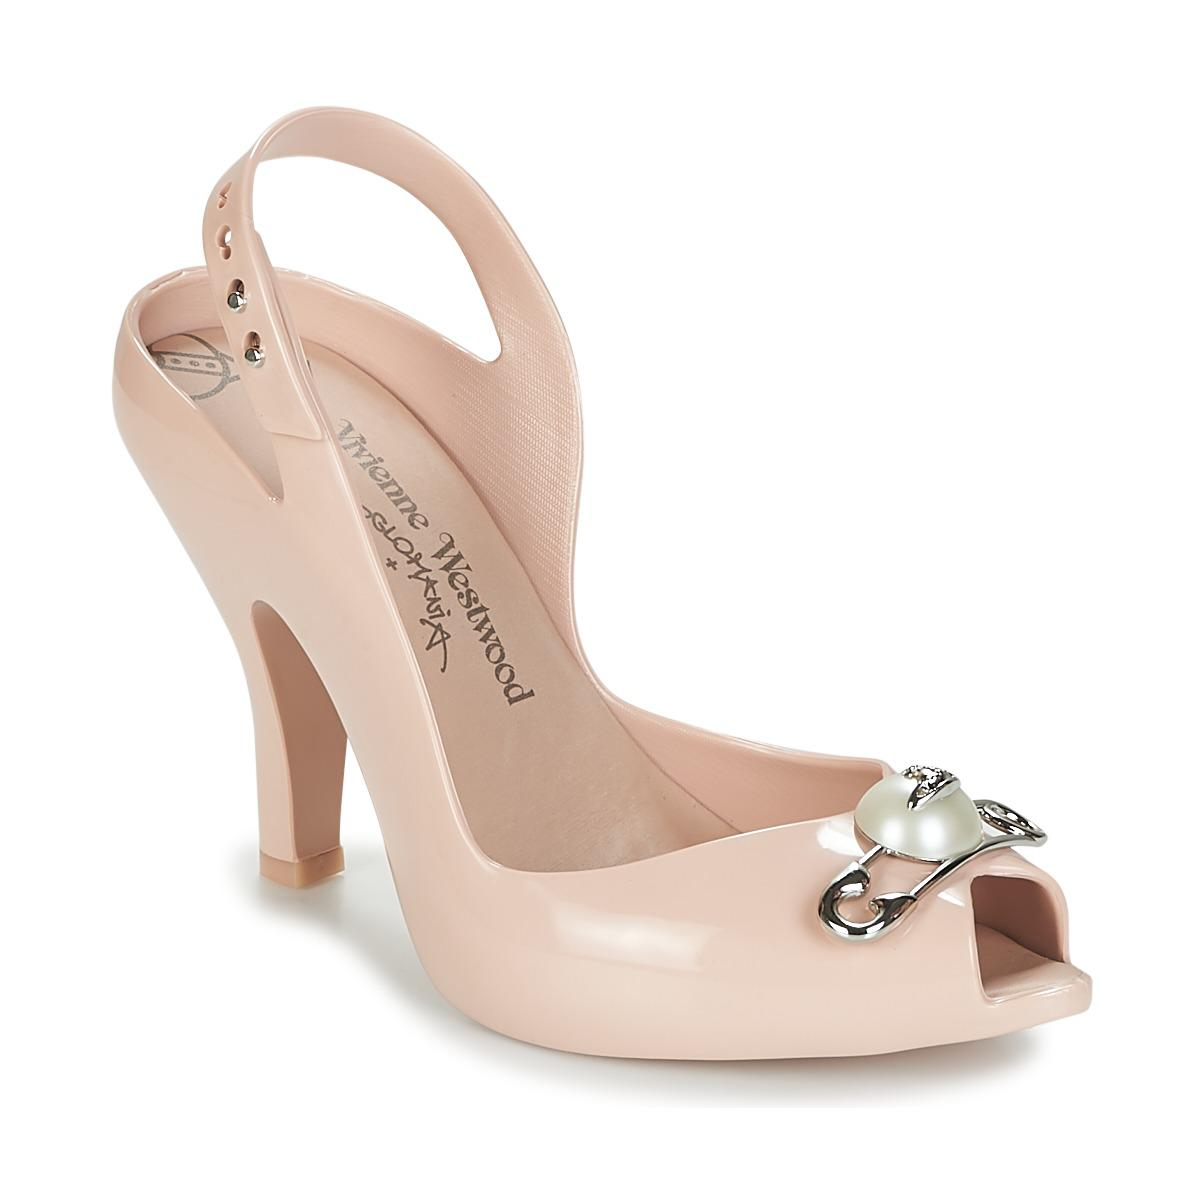 Melissa VIVIENNE WESTWOOD LADY DRAGON women's Shoes (Trainers) in Sale Low Shipping Fee Buy Cheap Popular From China Cheap Price fKM8znMG